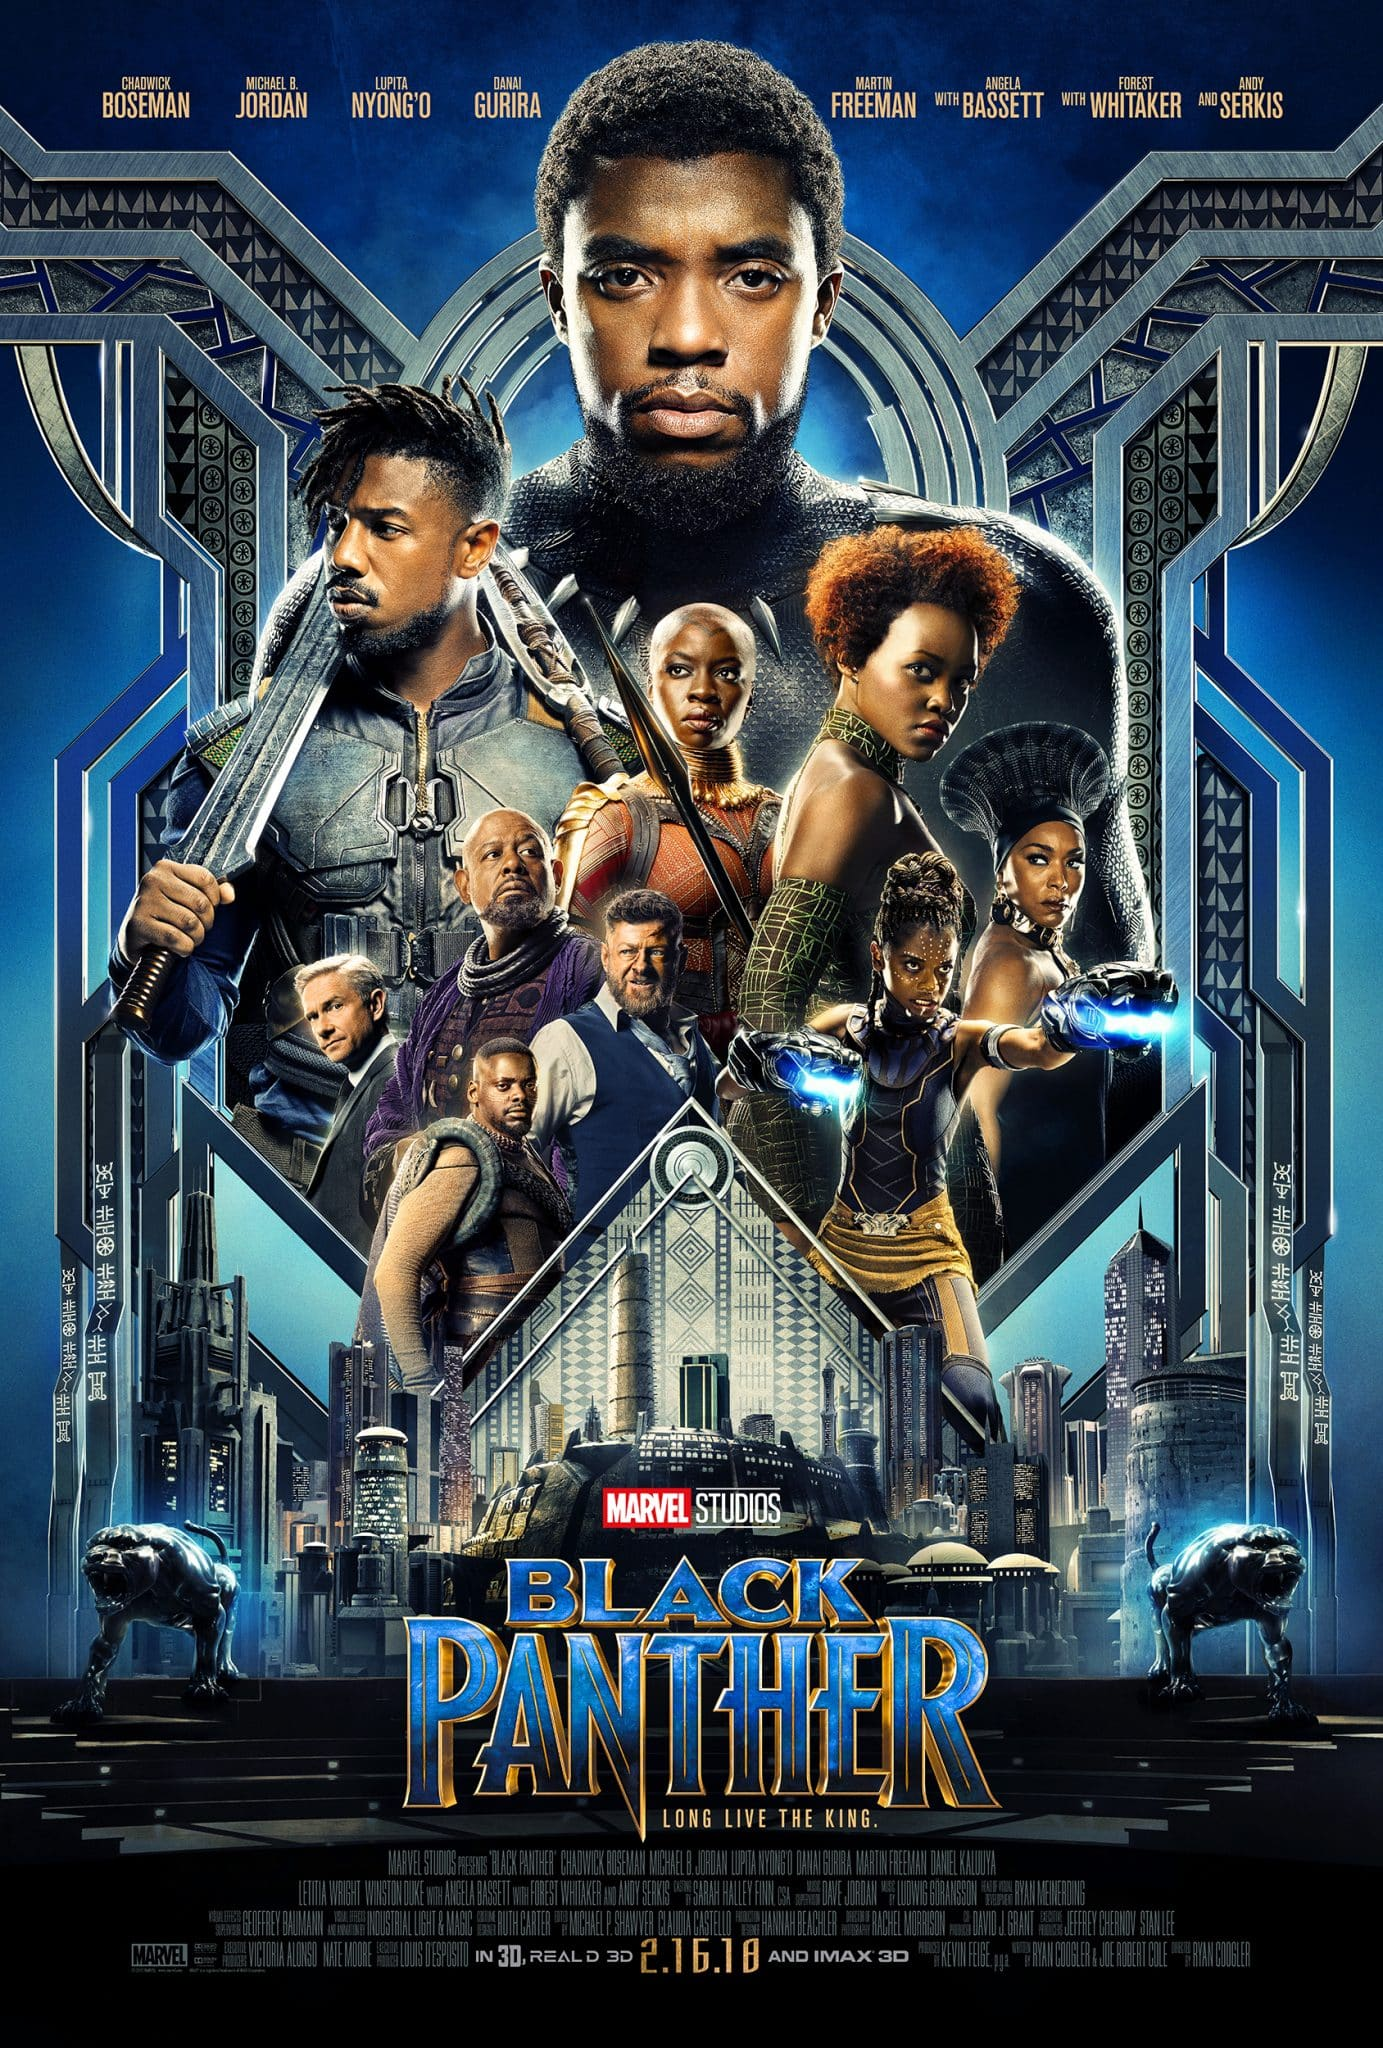 Enter to Win a Black Panther Prize Pack! #BlackPanther | #THBGiveaway